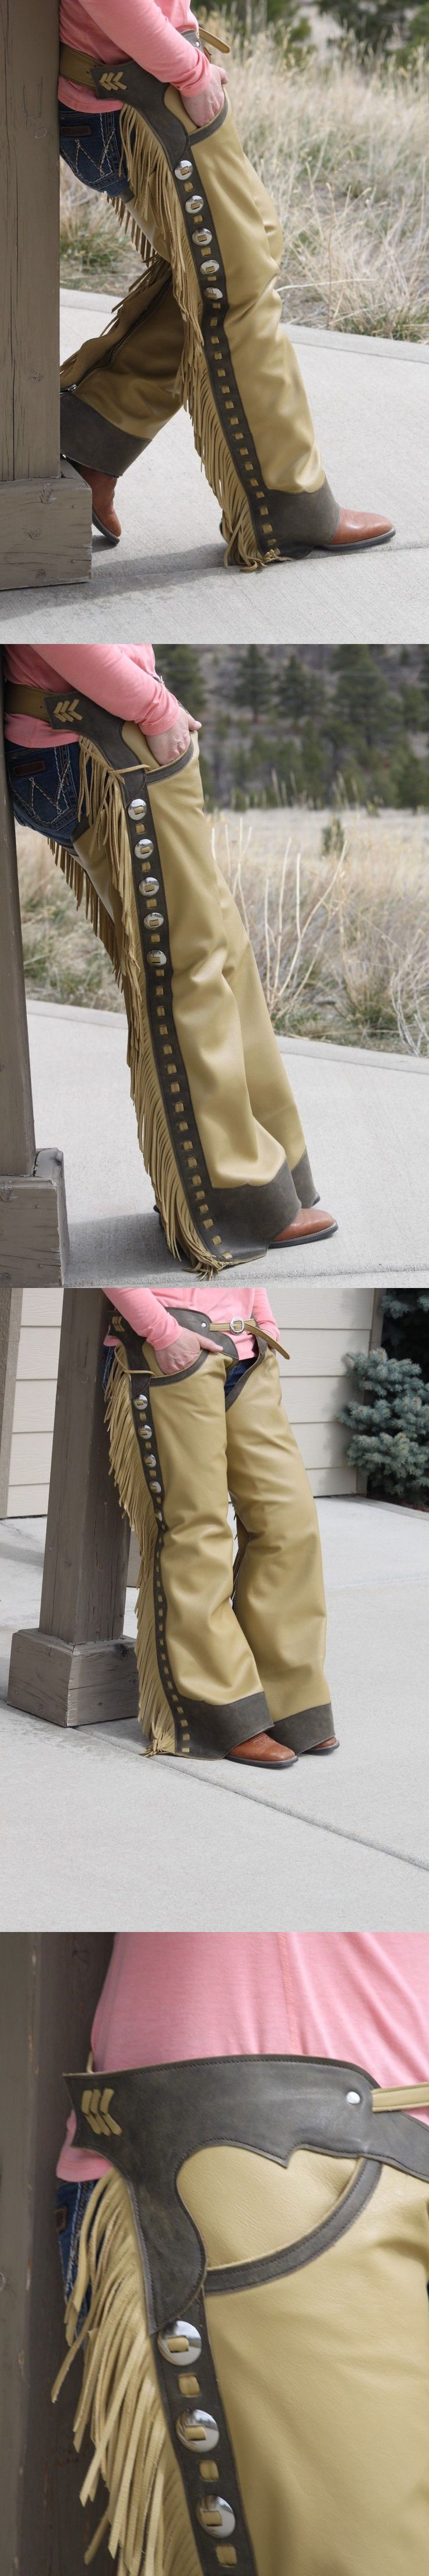 Western Chaps Full Chaps 183358: Shotgun Chaps With Adjustable Zippers, Pockets And Conchos -> BUY IT NOW ONLY: $350 on eBay!